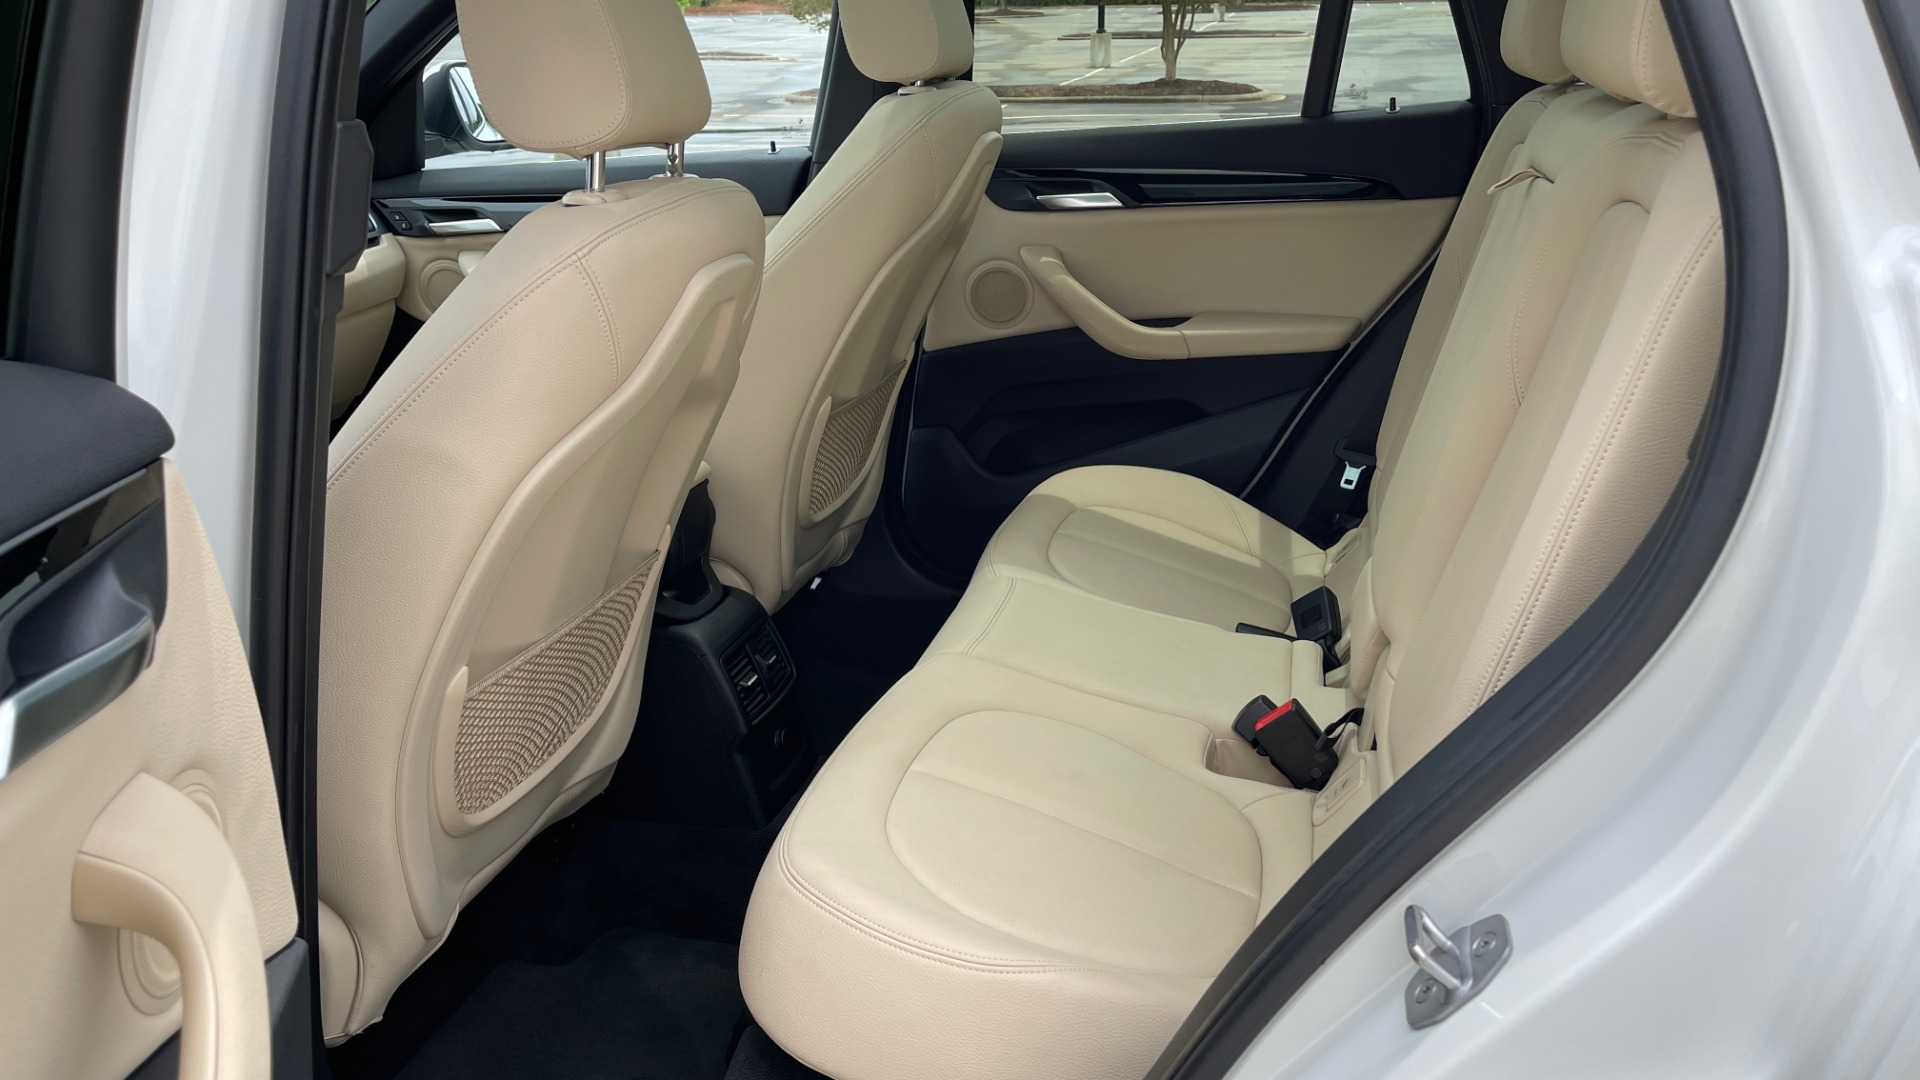 Used 2018 BMW X1 XDRIVE28I / CONV PKG / PANO-ROOF / HTD STS / PARK ASST / REARVIEW for sale $30,995 at Formula Imports in Charlotte NC 28227 69